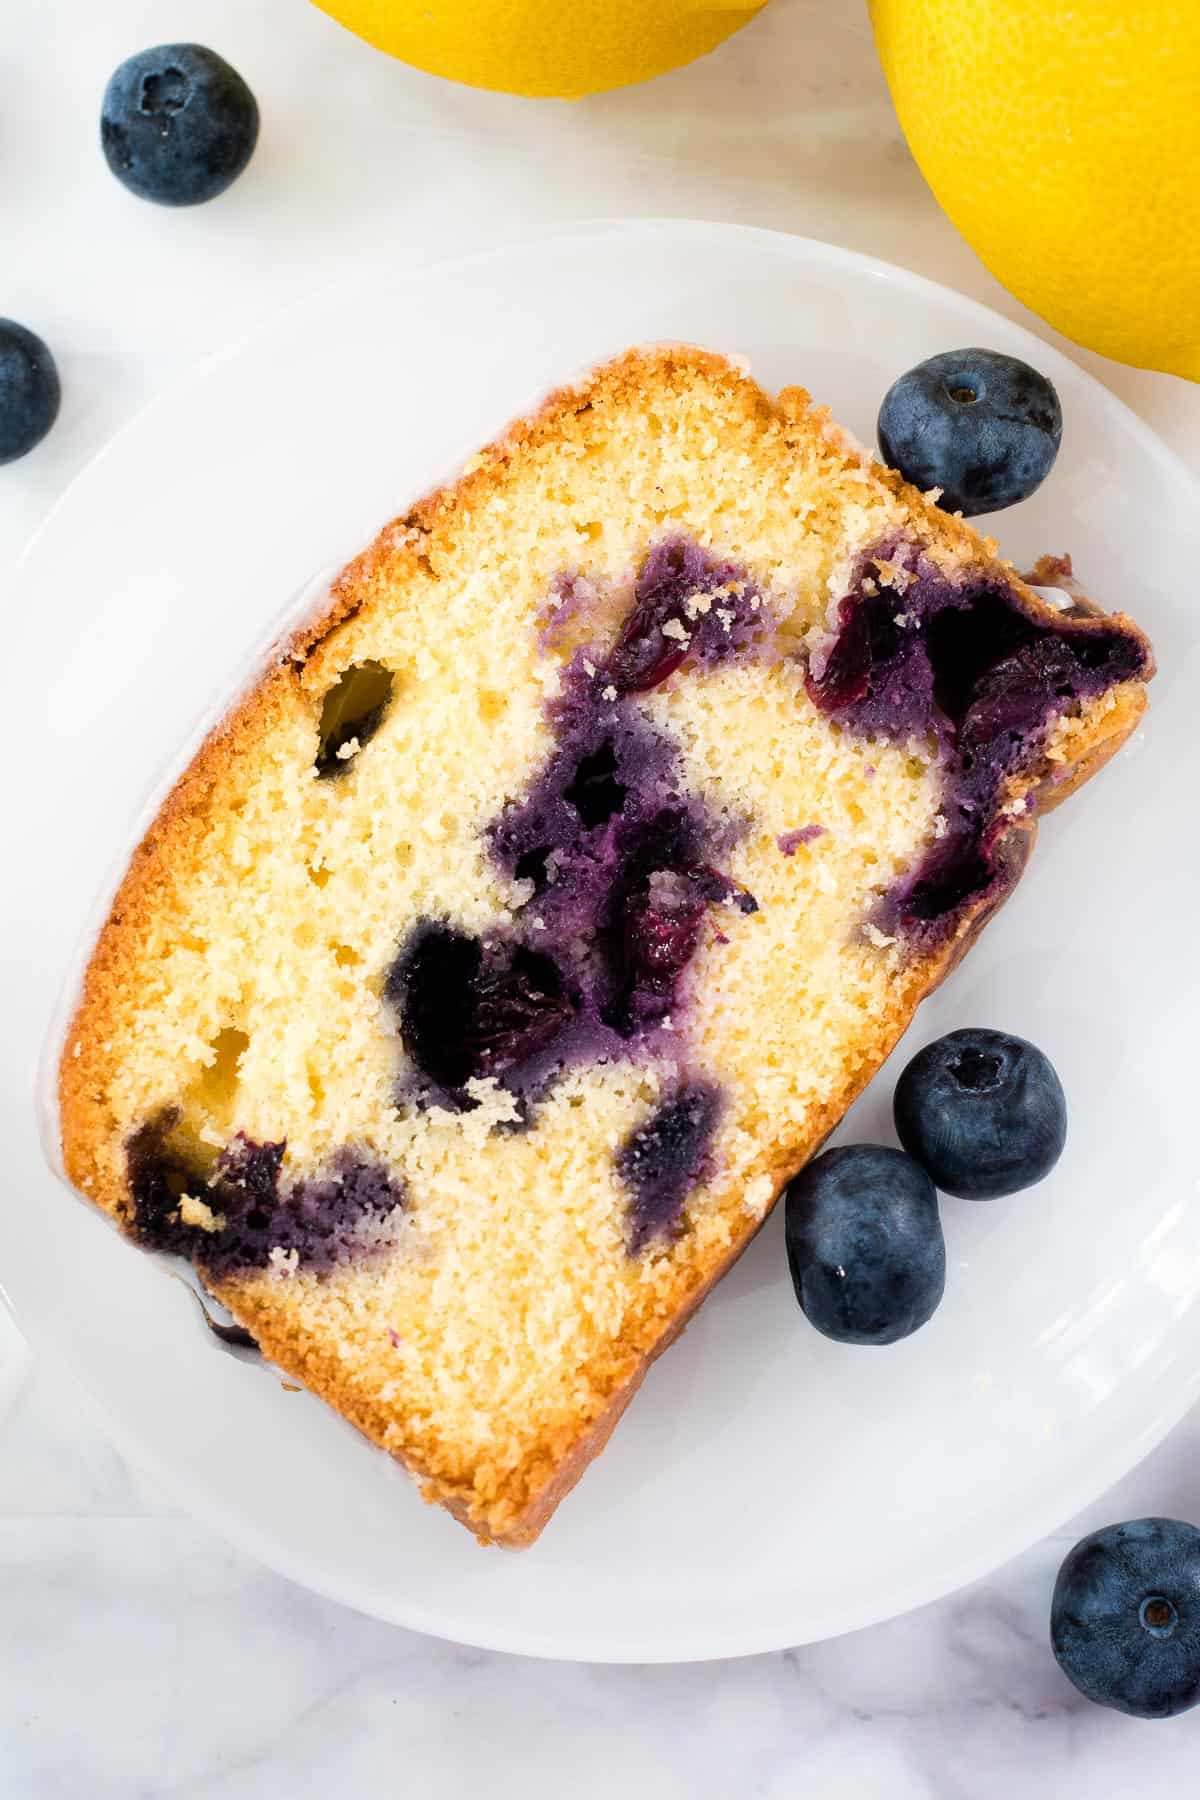 A slice of blueberry cake on a white plate